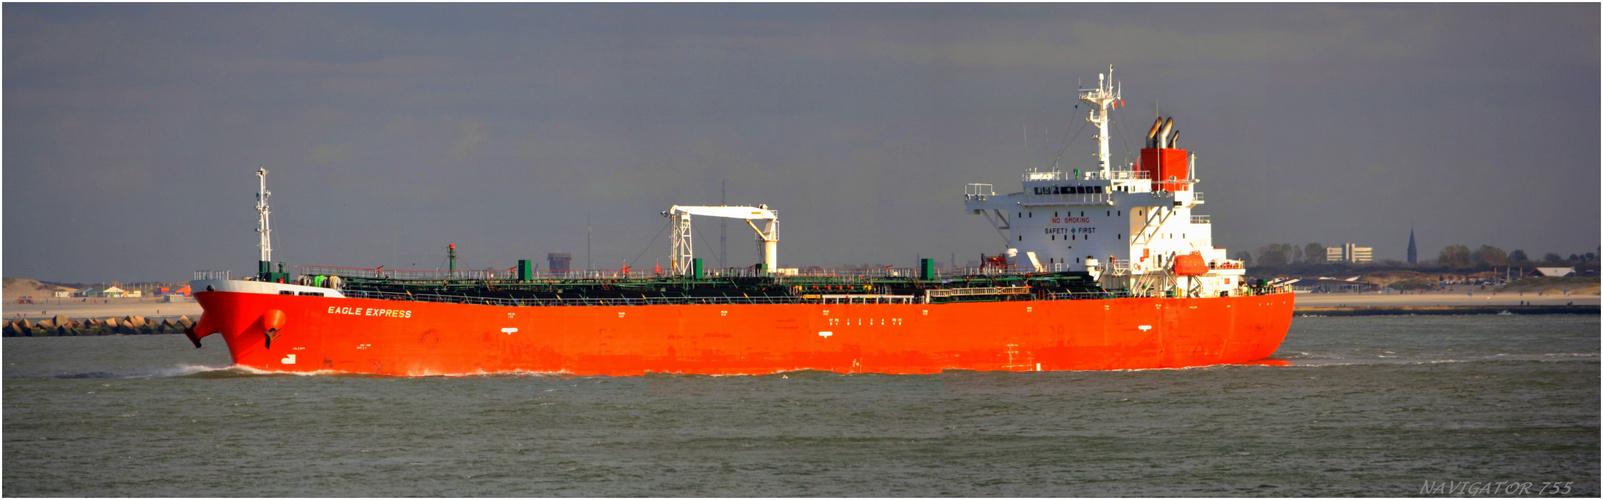 EAGLE EXPRESS / Oil Products Tanker / Maasmond / 23.10.2013